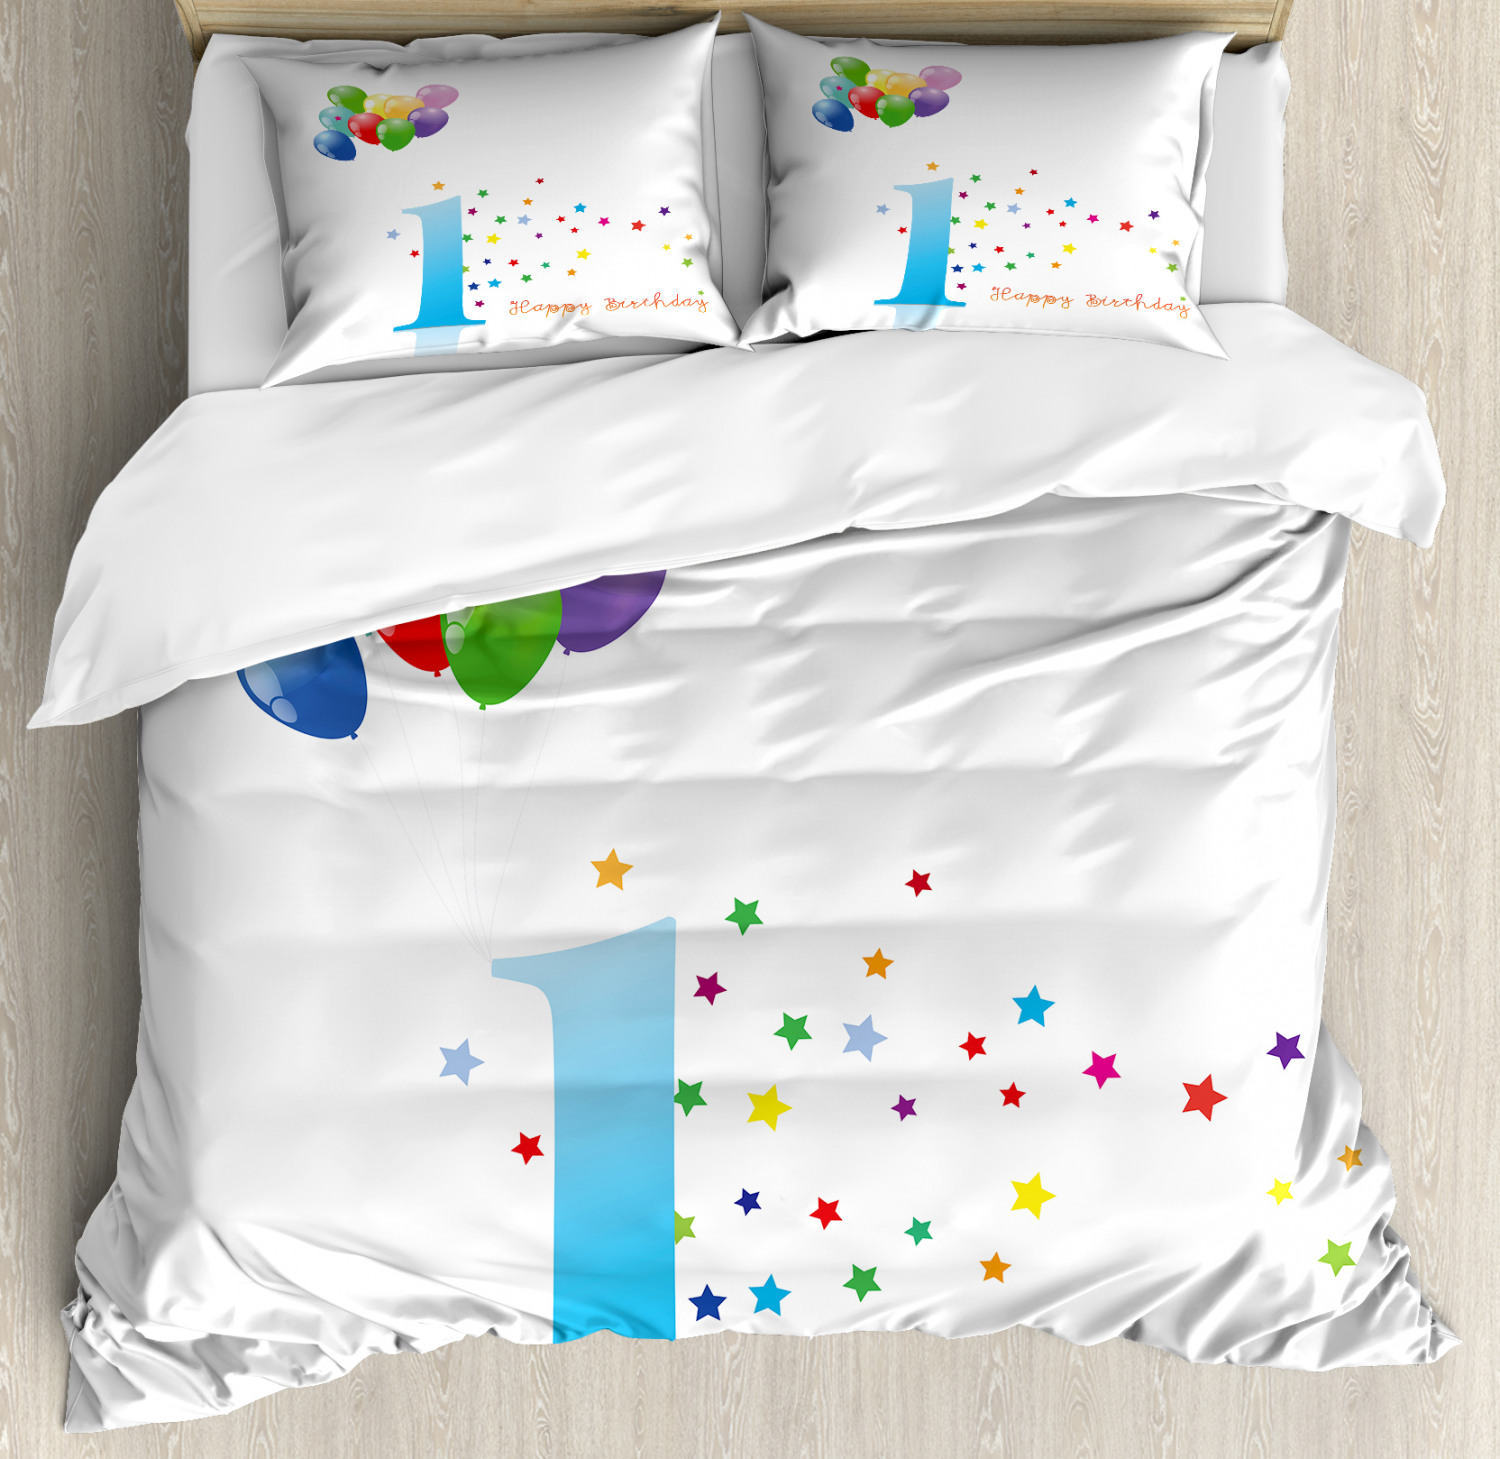 Coloreeful Duvet Cover Set with Pillow Shams Kids First Birthday Print